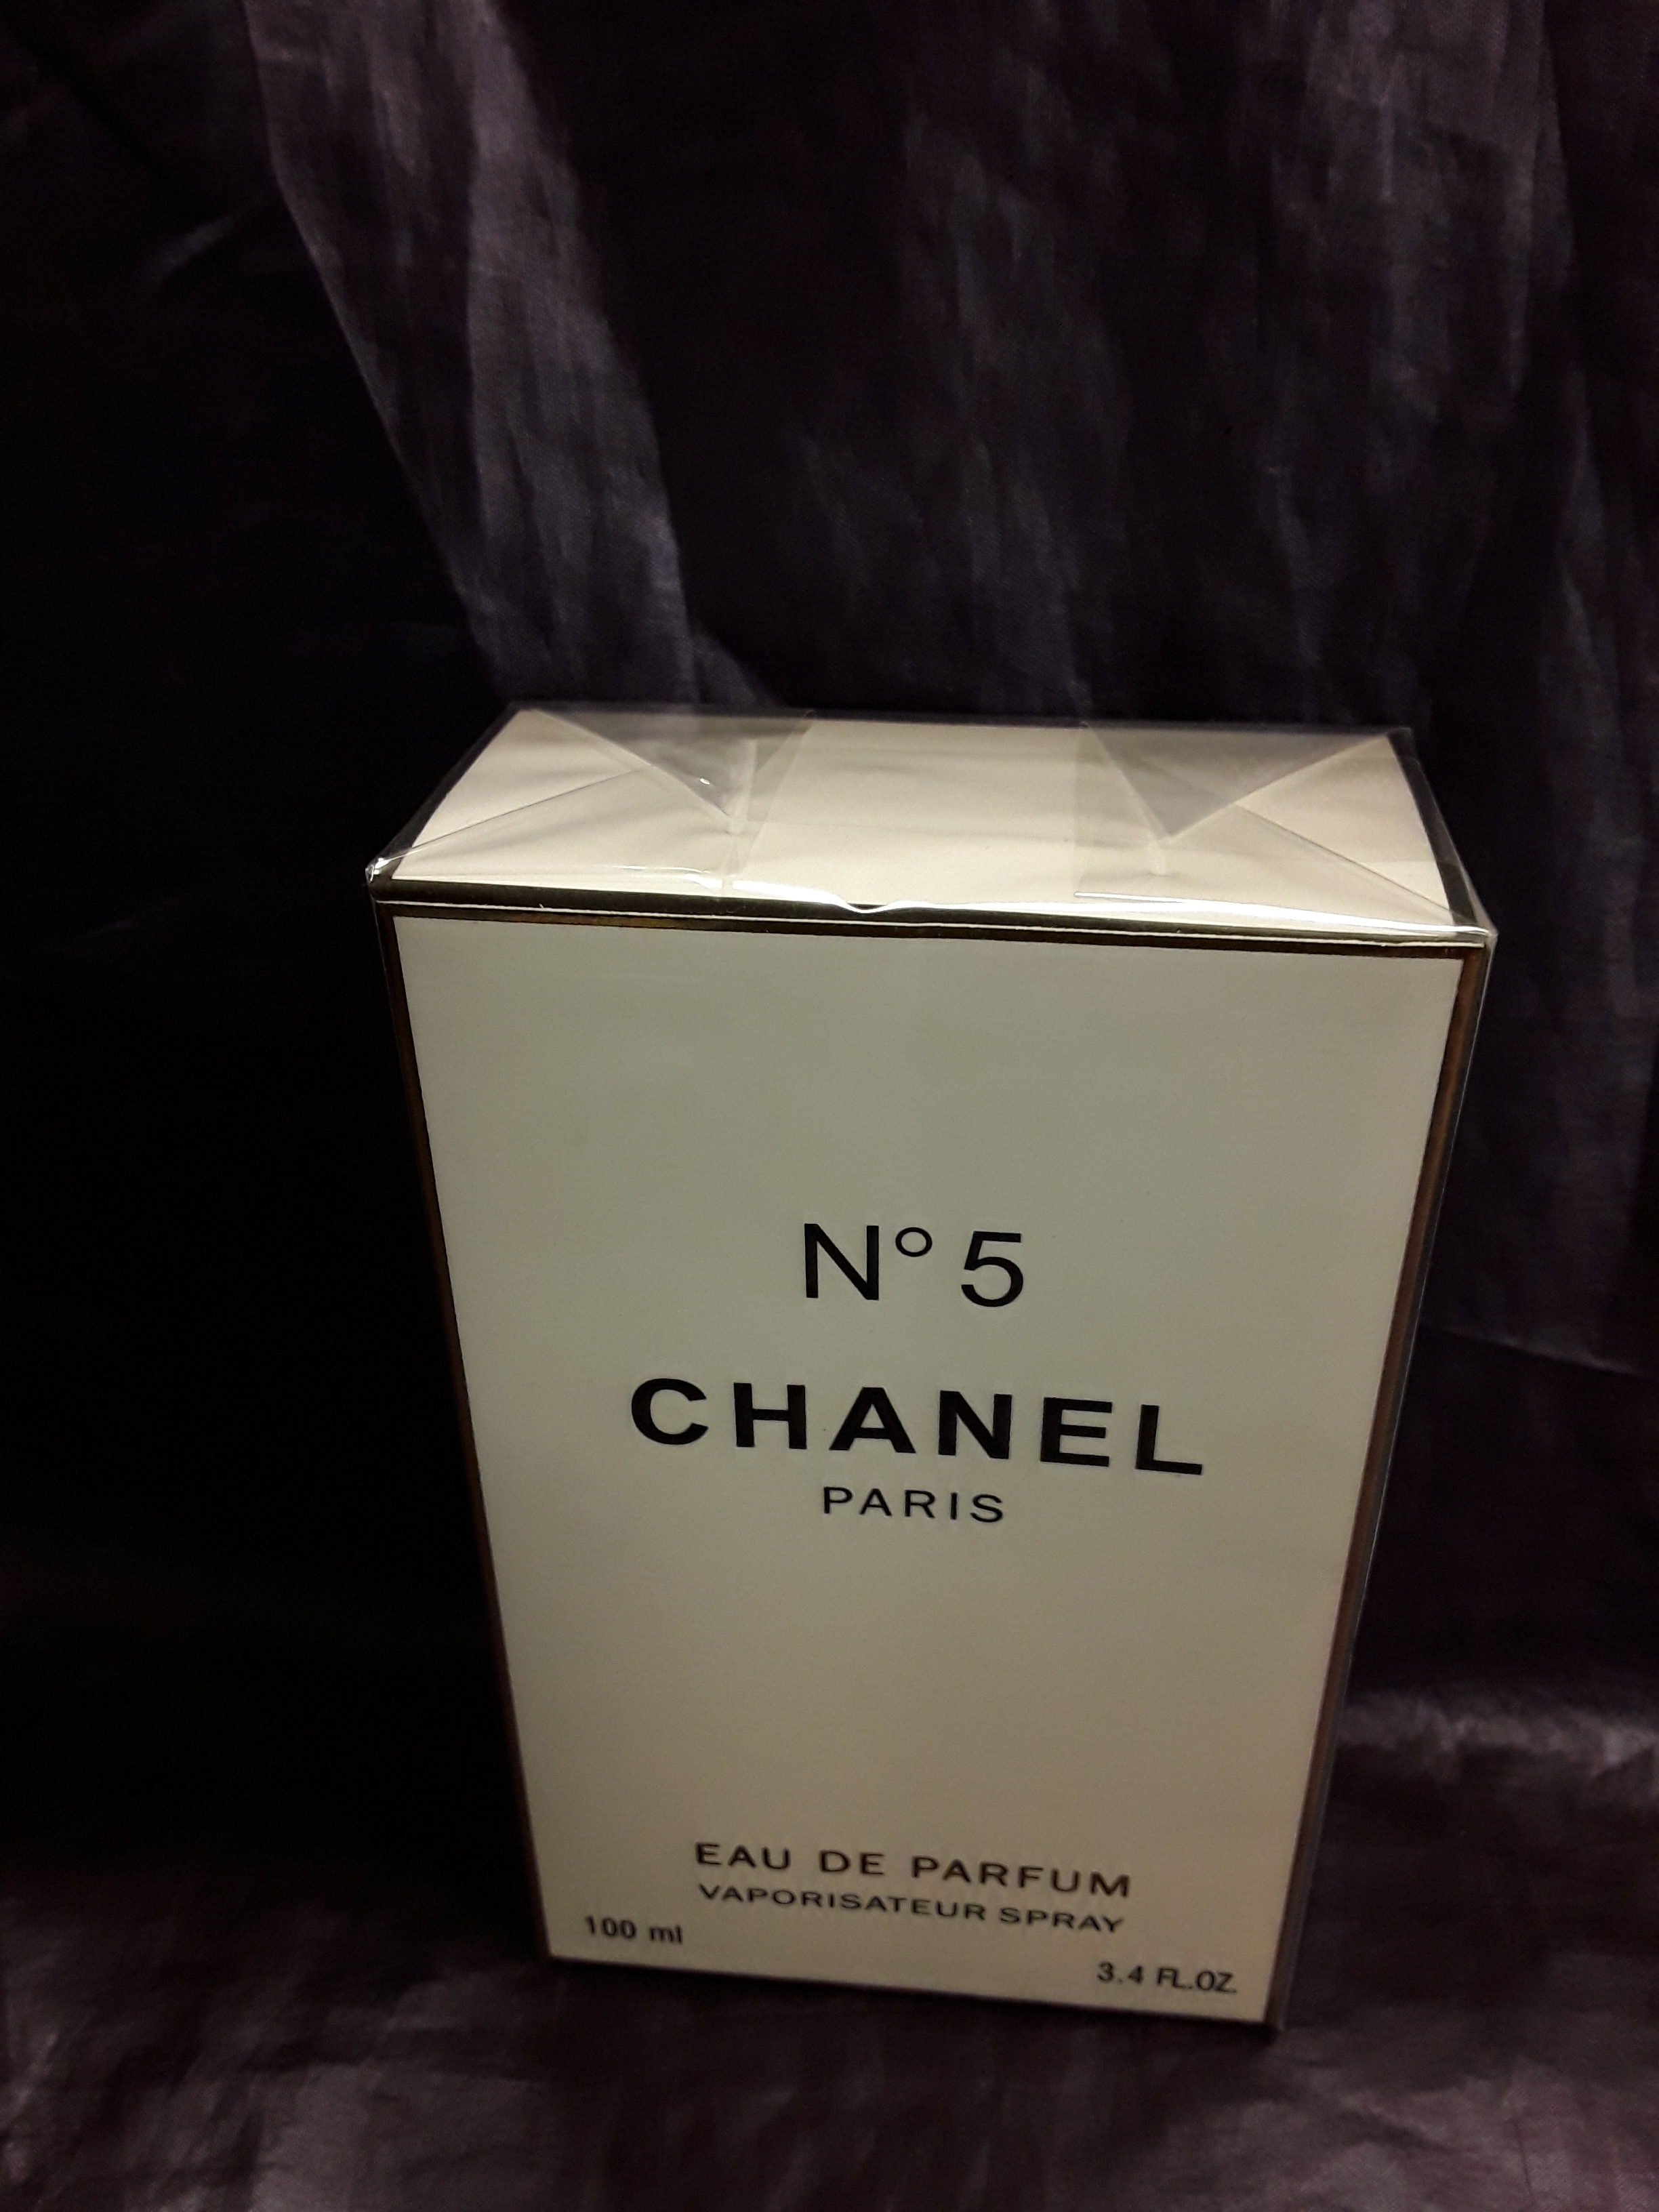 Chanel Paris 3.4 OZ